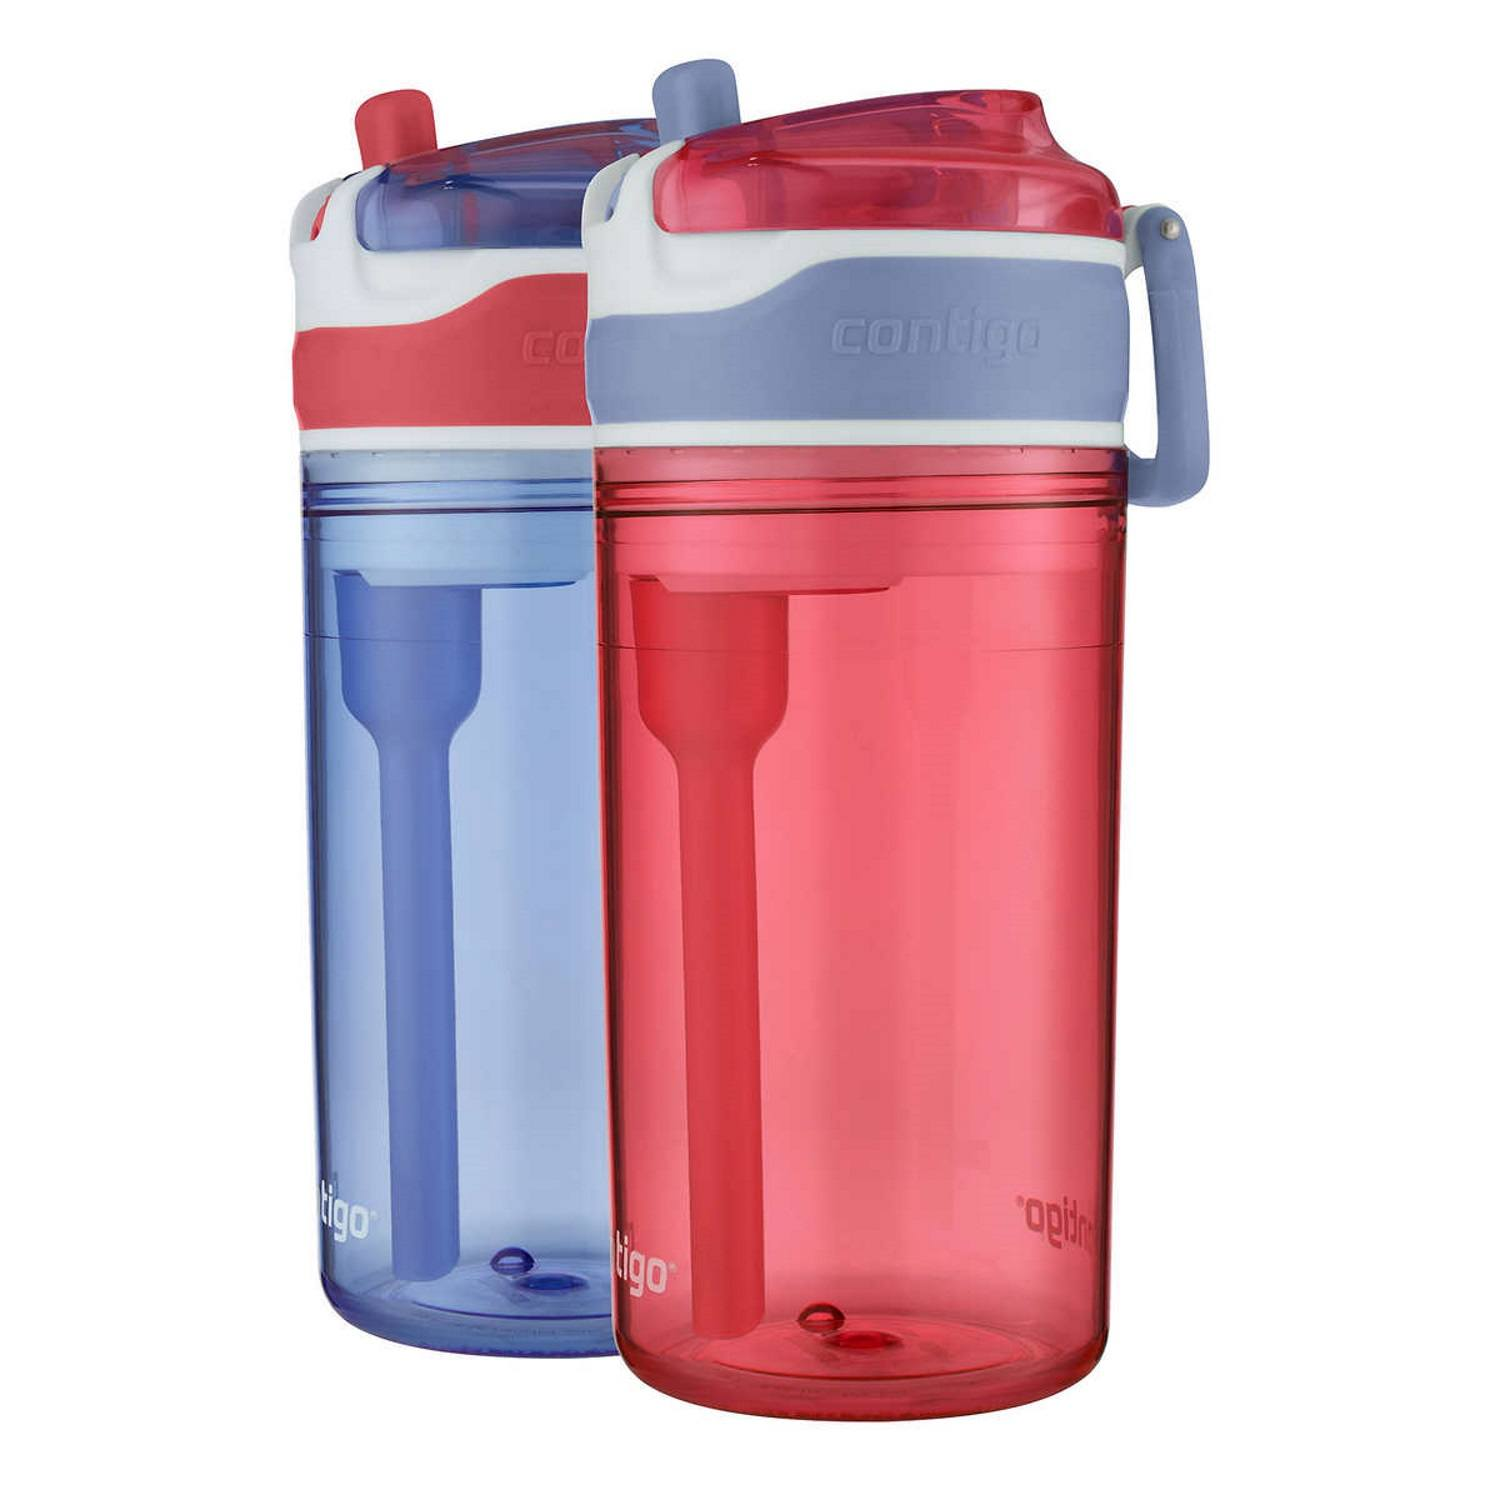 Contigo Kids 2-in-1 Snack Hero Tumbler Featuring 4oz Snack Holder Stacked on Top of 13oz Water Bottle